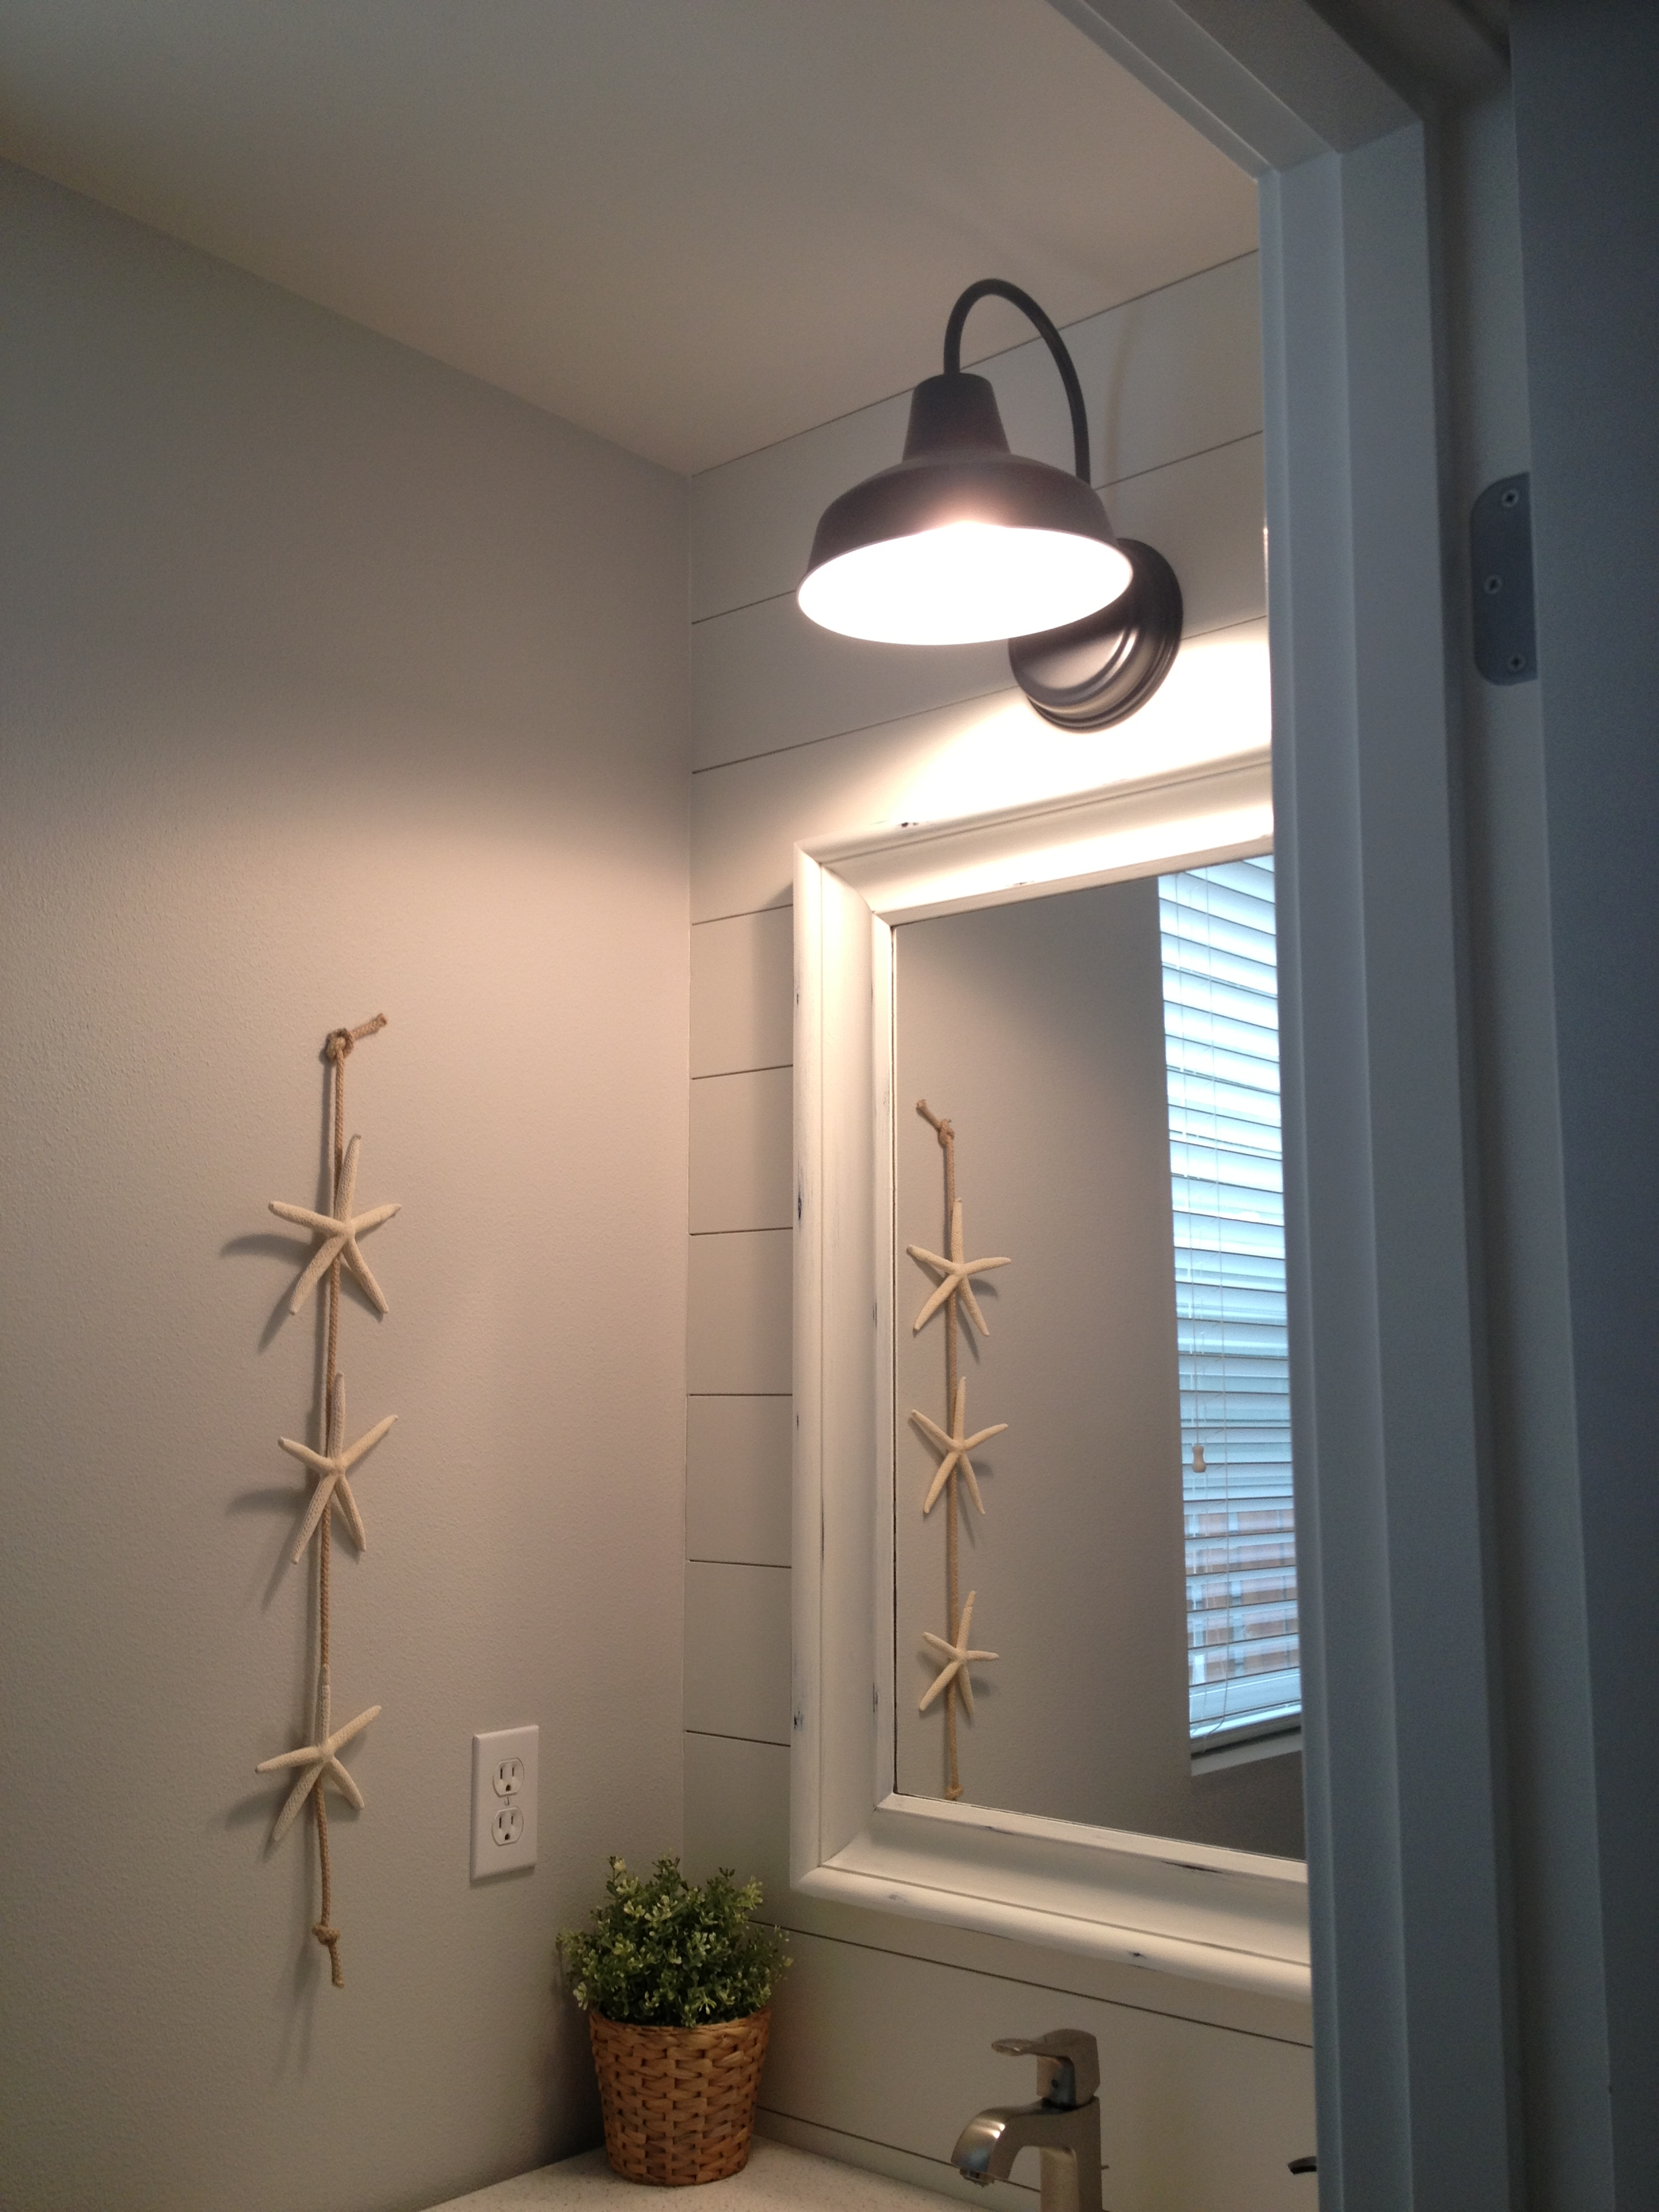 Barn Wall Sconce Lends Farmhouse Look to Powder Room Remake Blog